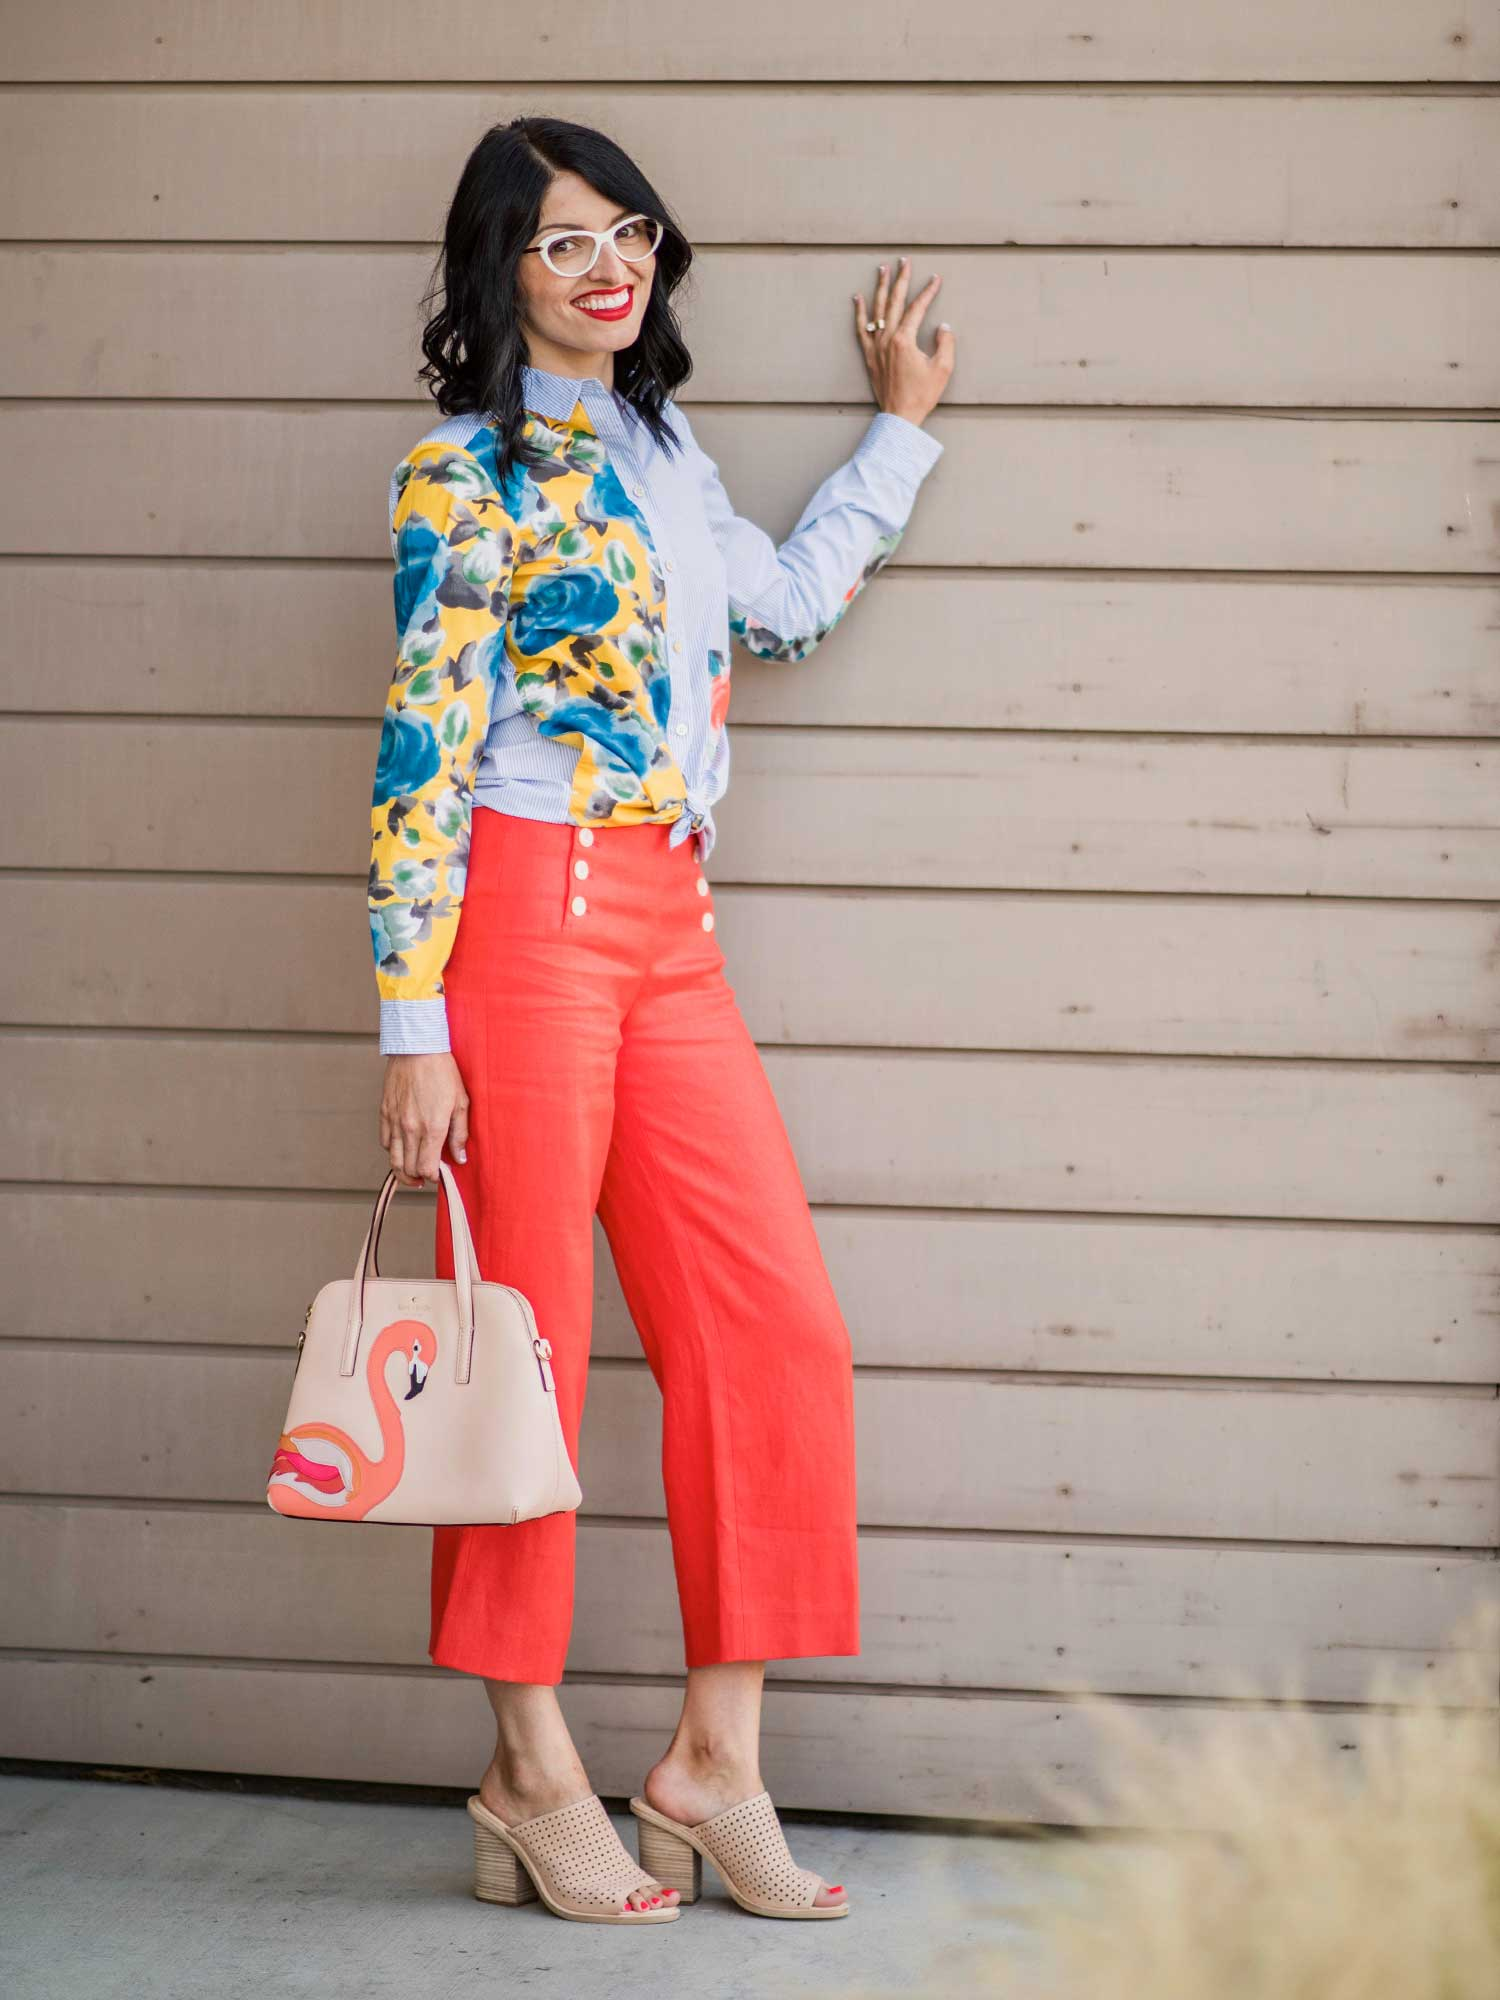 Jenna-Pilant-San-Diego-Style-Blogger-Lucky-Little-Mustardseed-How-To-Wear-Your-Husband's-Shirt-3